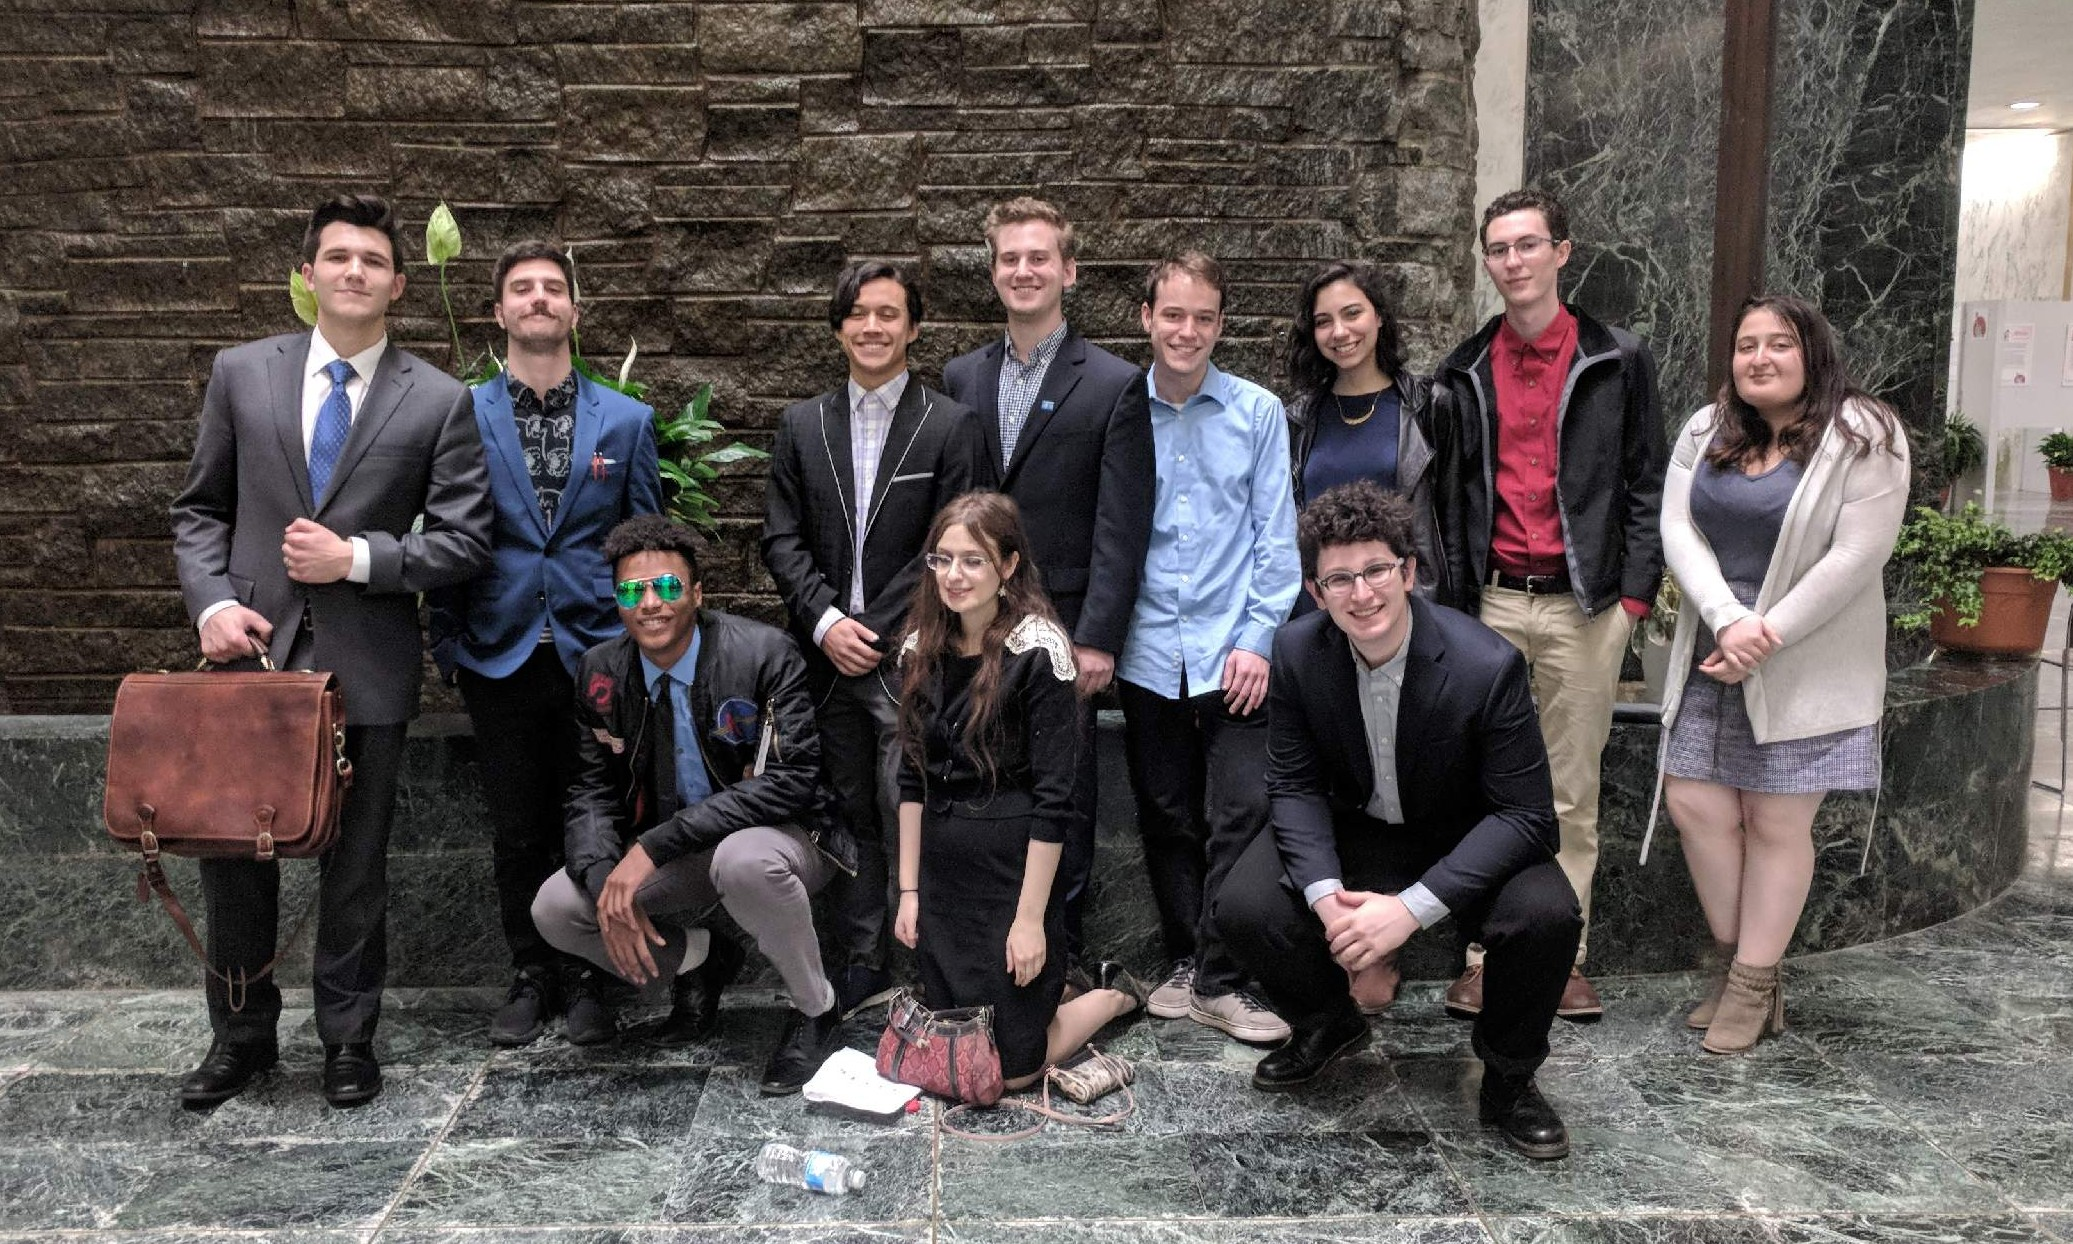 Eleven New York state SSDP students dressed in business attire smiling and standing together in the lobby of the New York State legislative office building